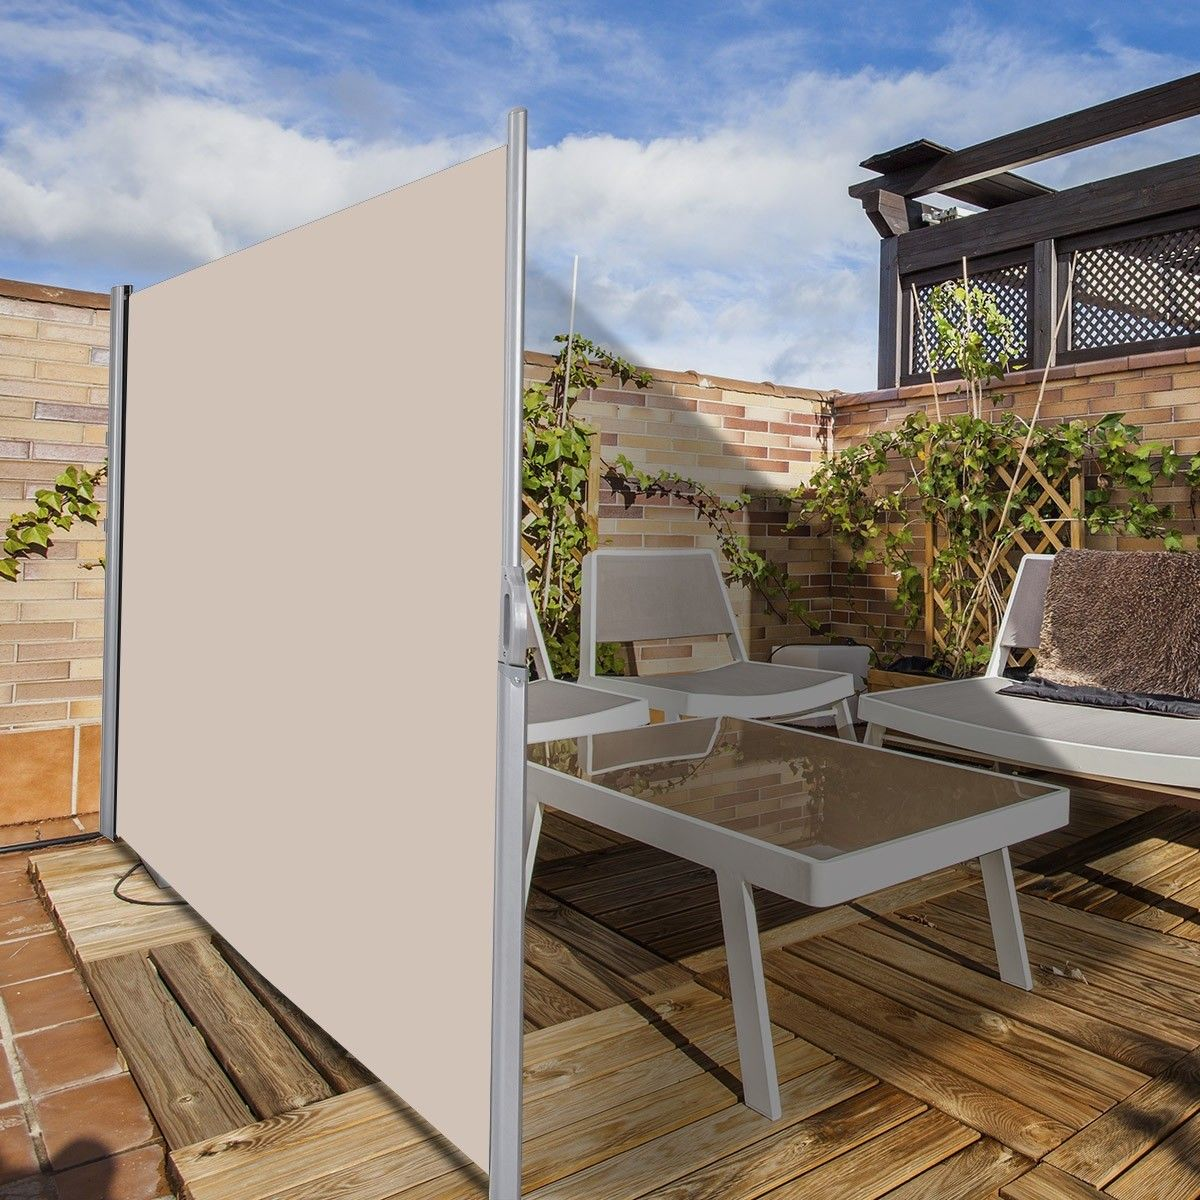 118 5 X 71 Patio Retractable Folding Side Awning Screen Patio